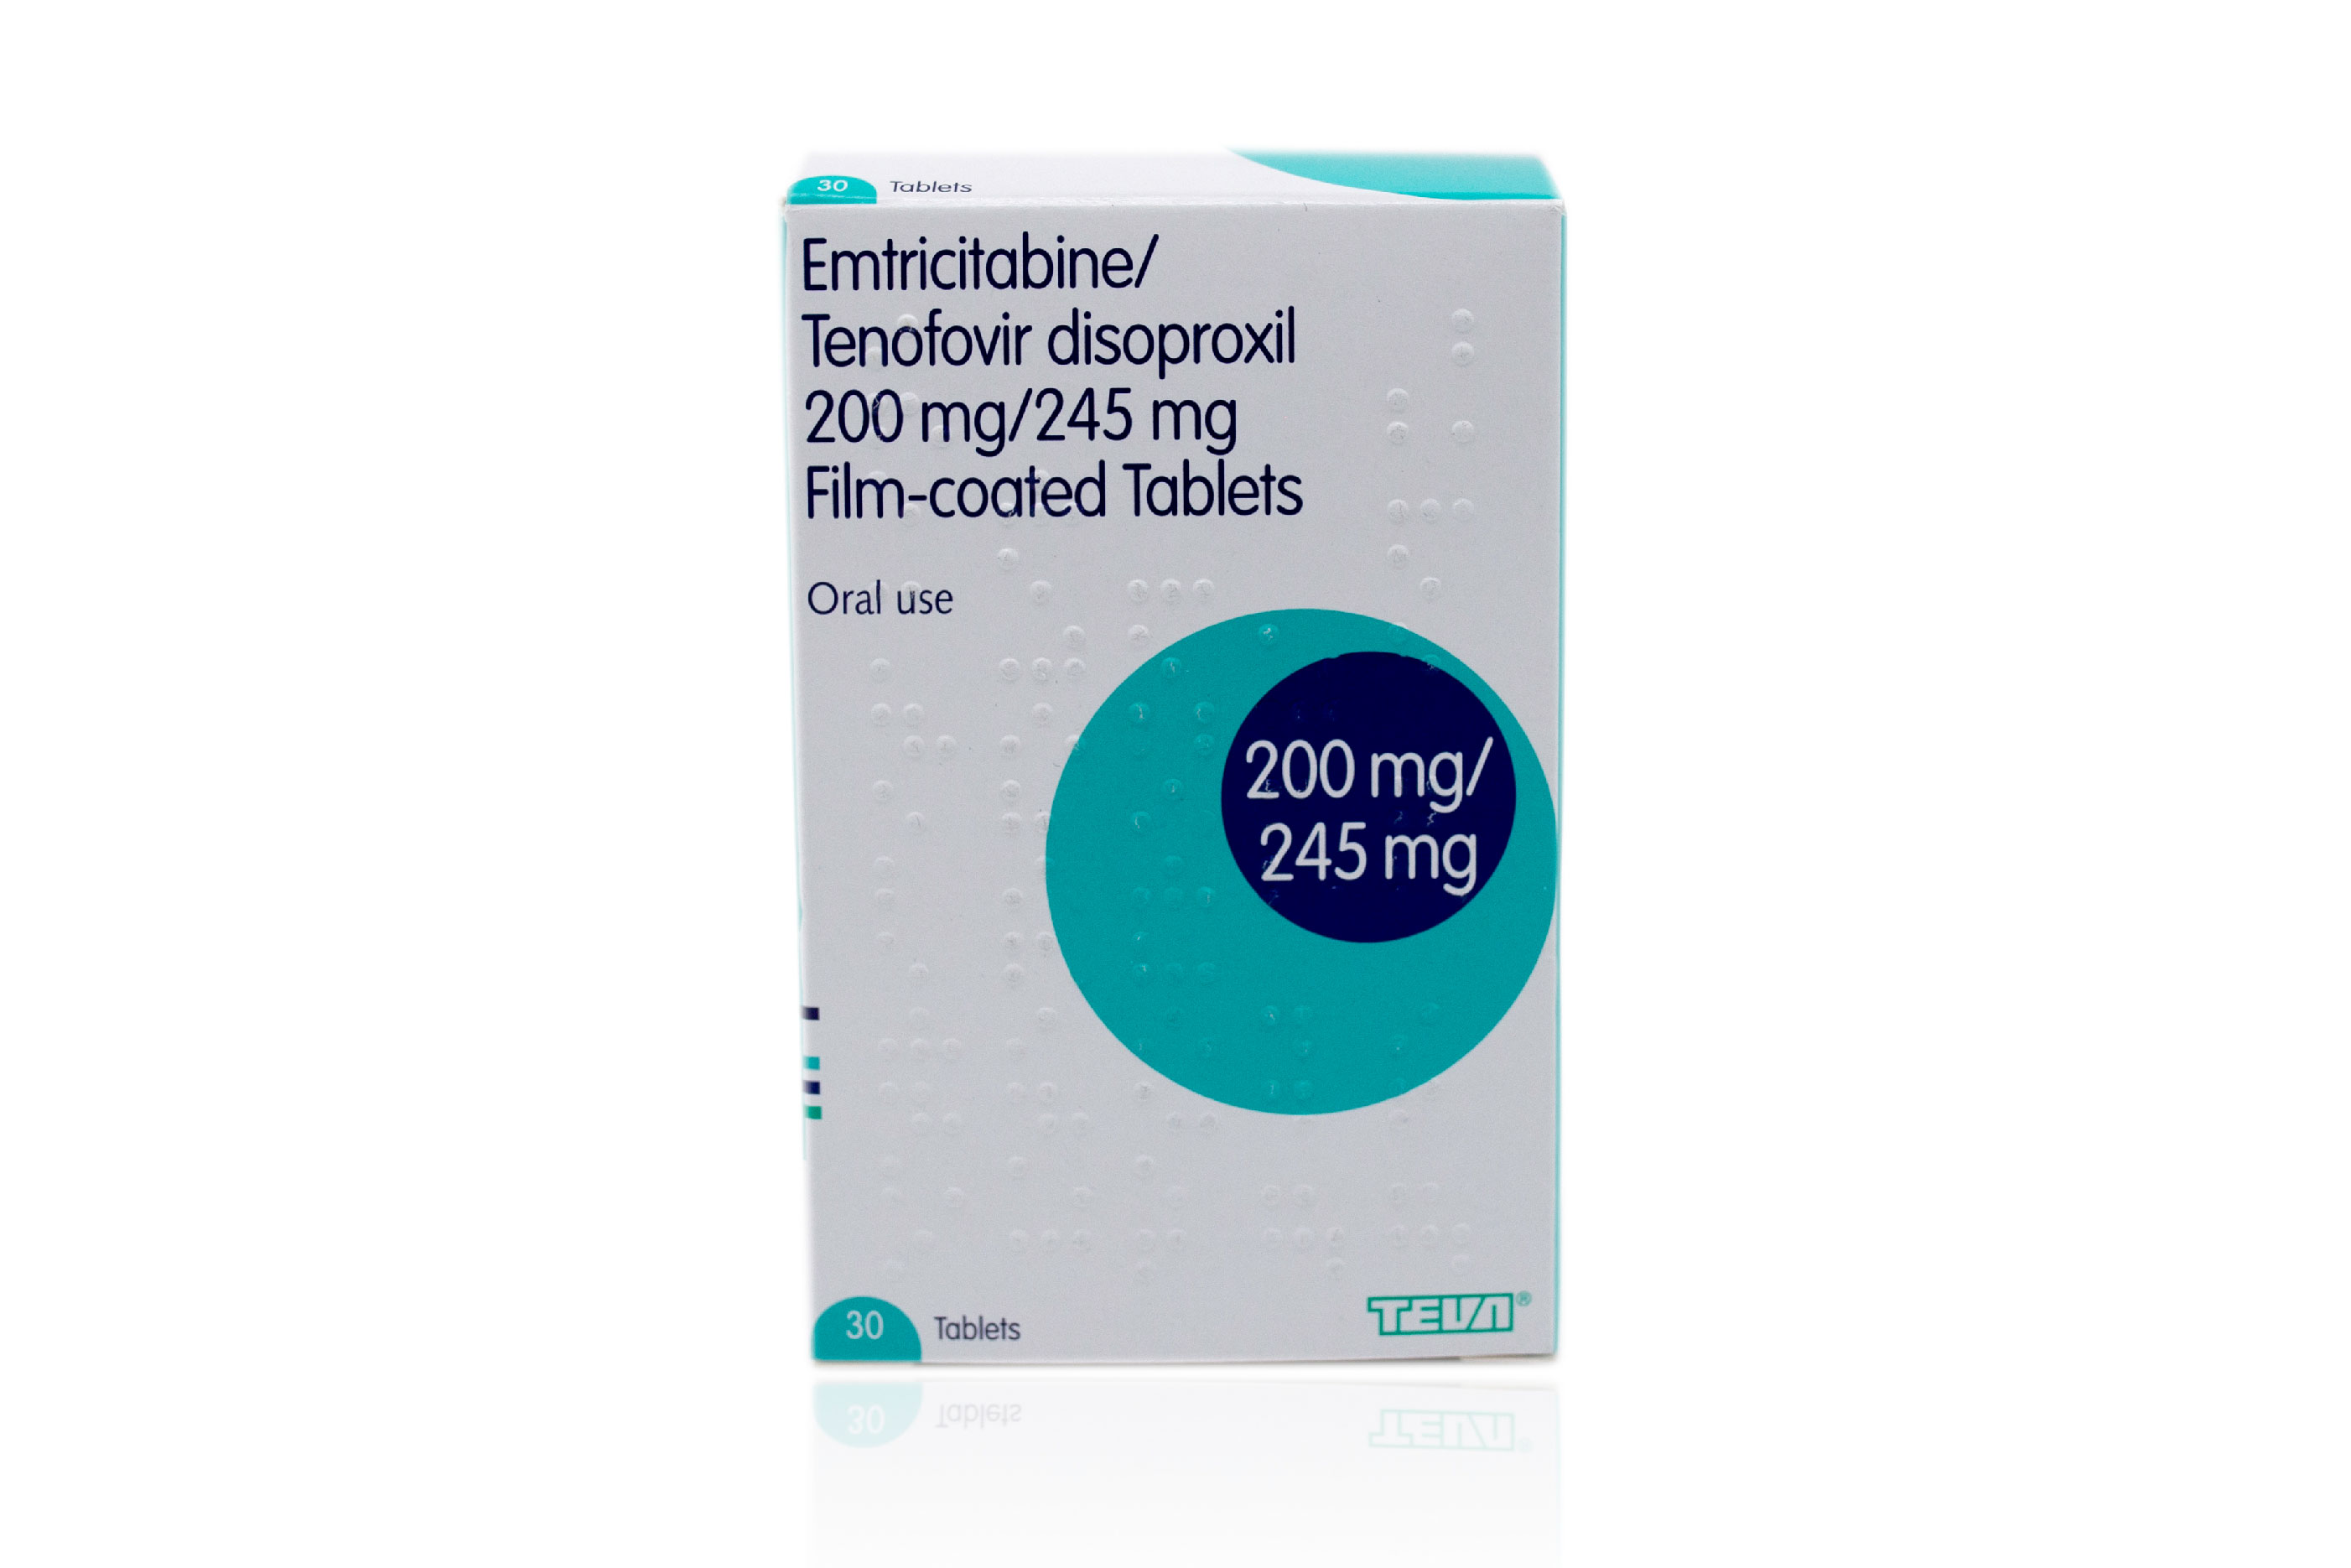 PrEP medication, Emtricitabine / Tenofovir disoproxil